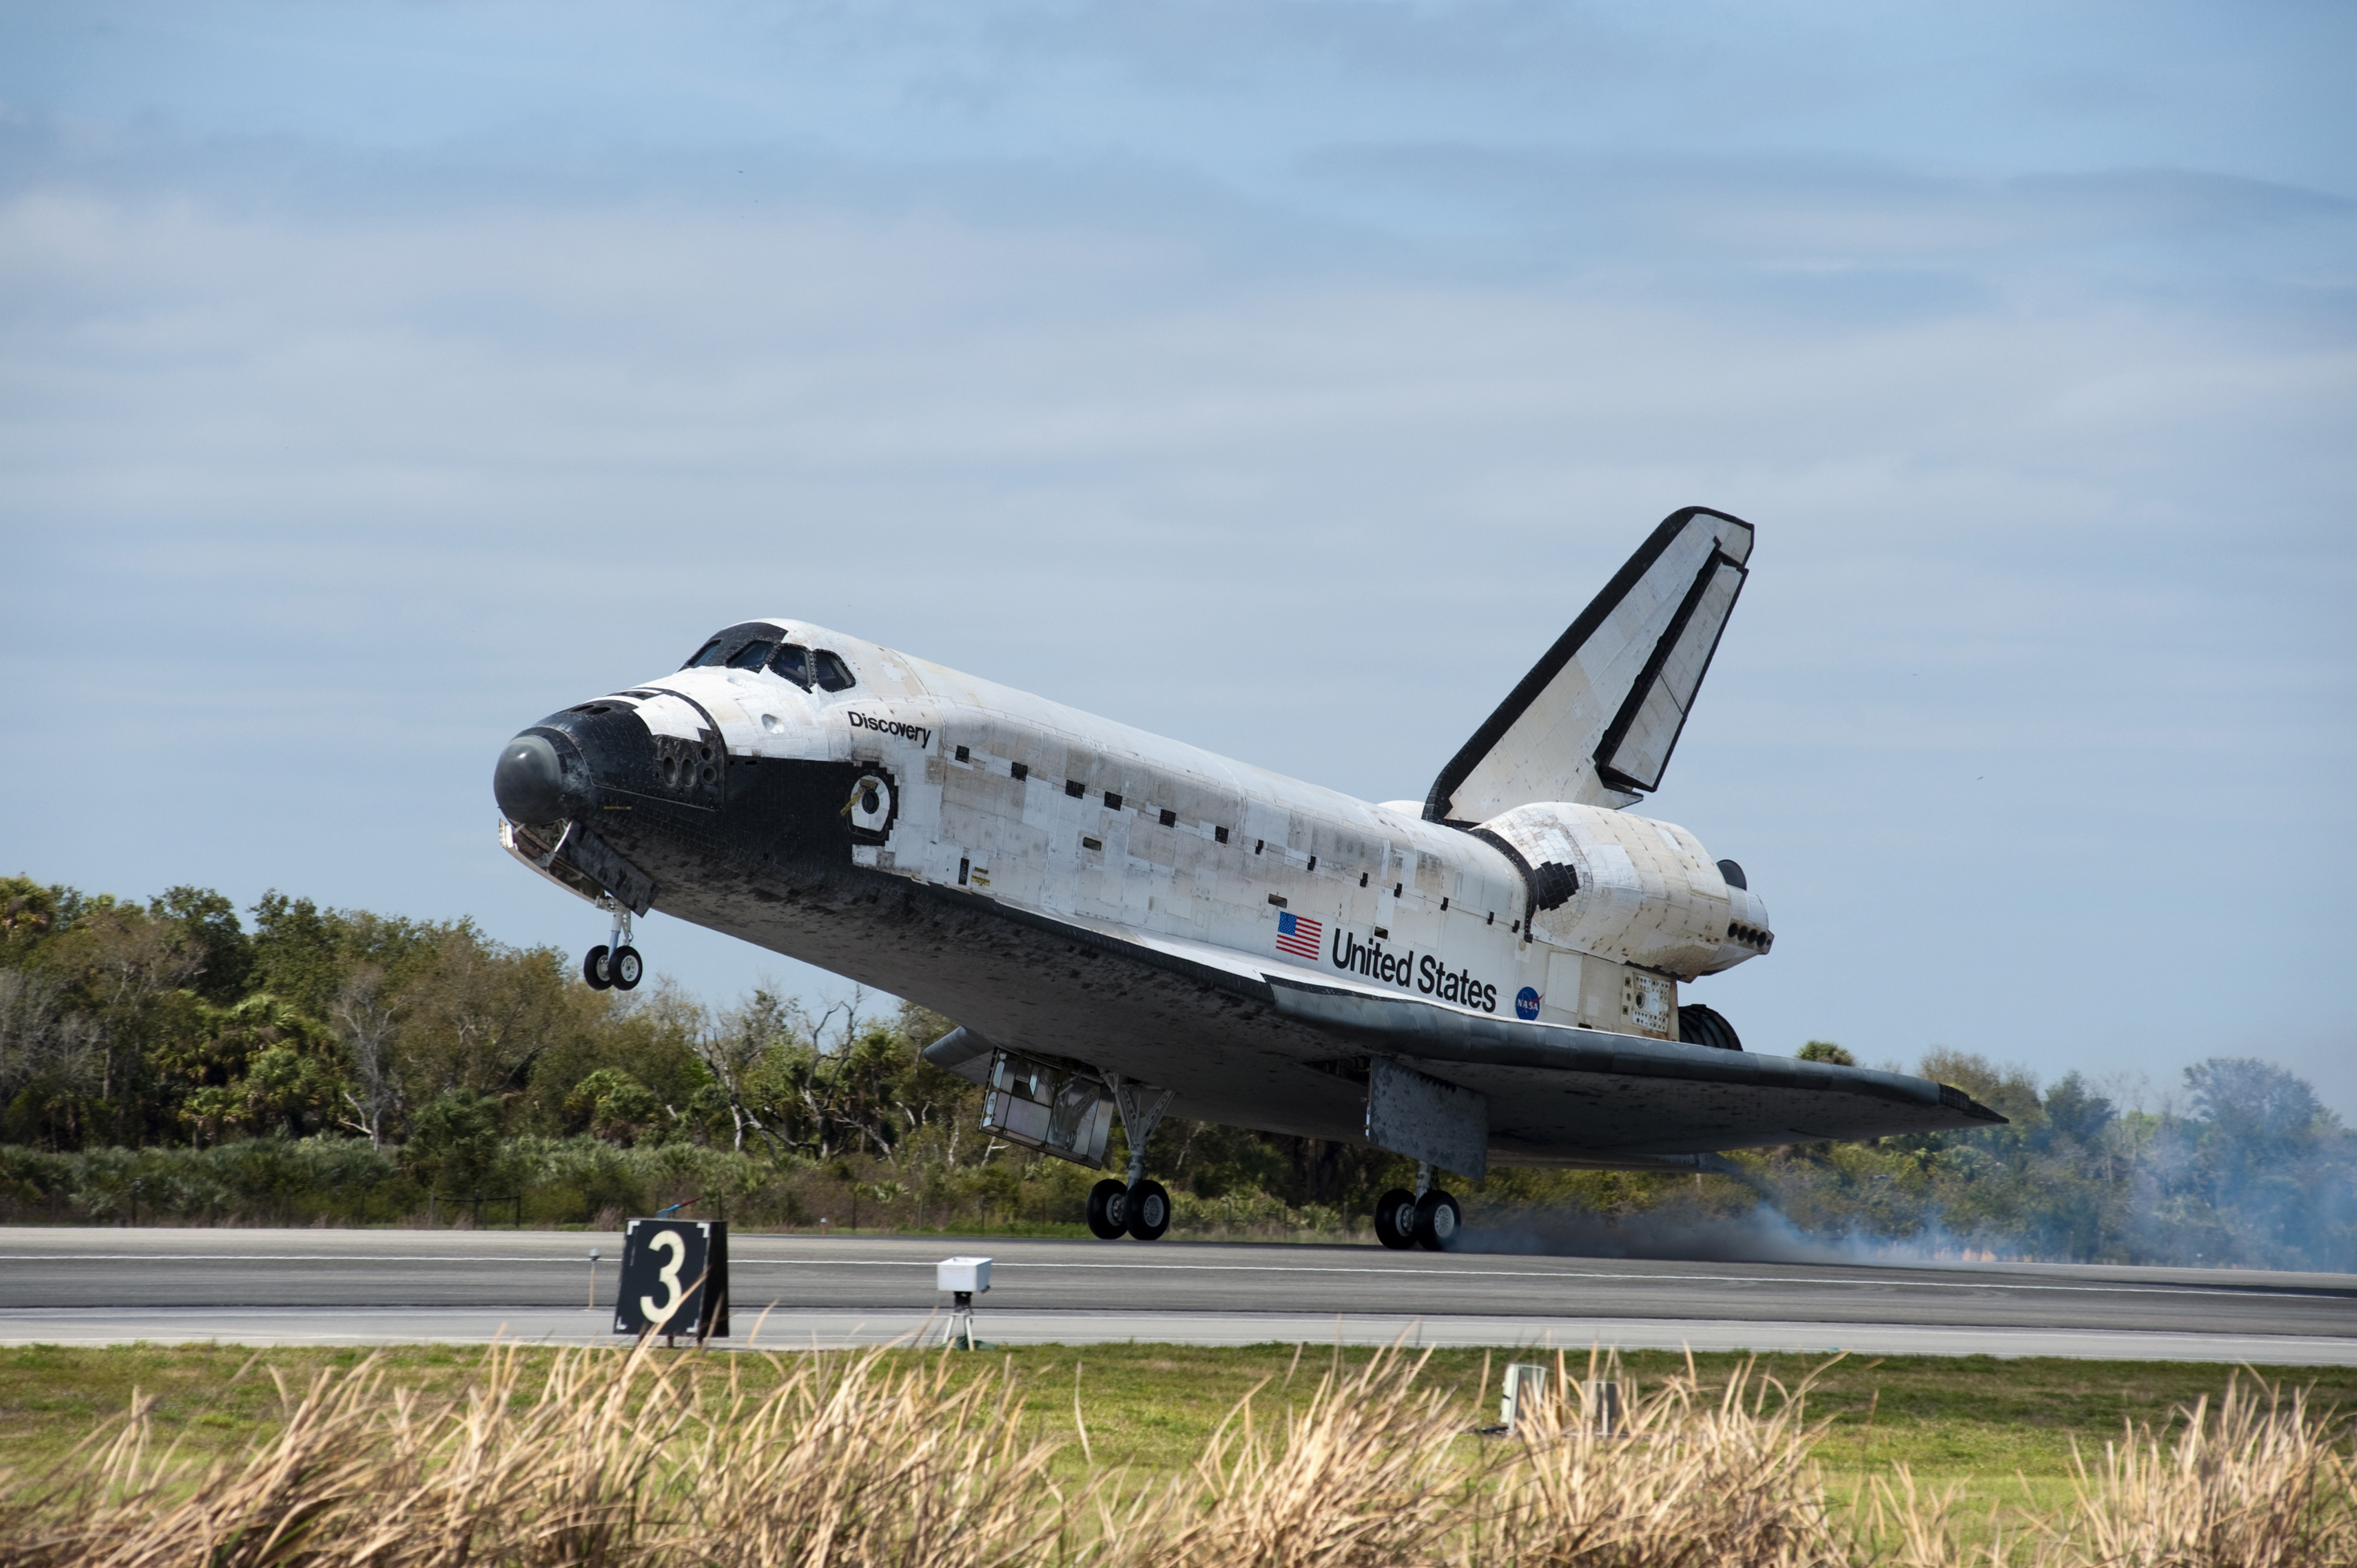 space shuttle discovery - HD3000×1996